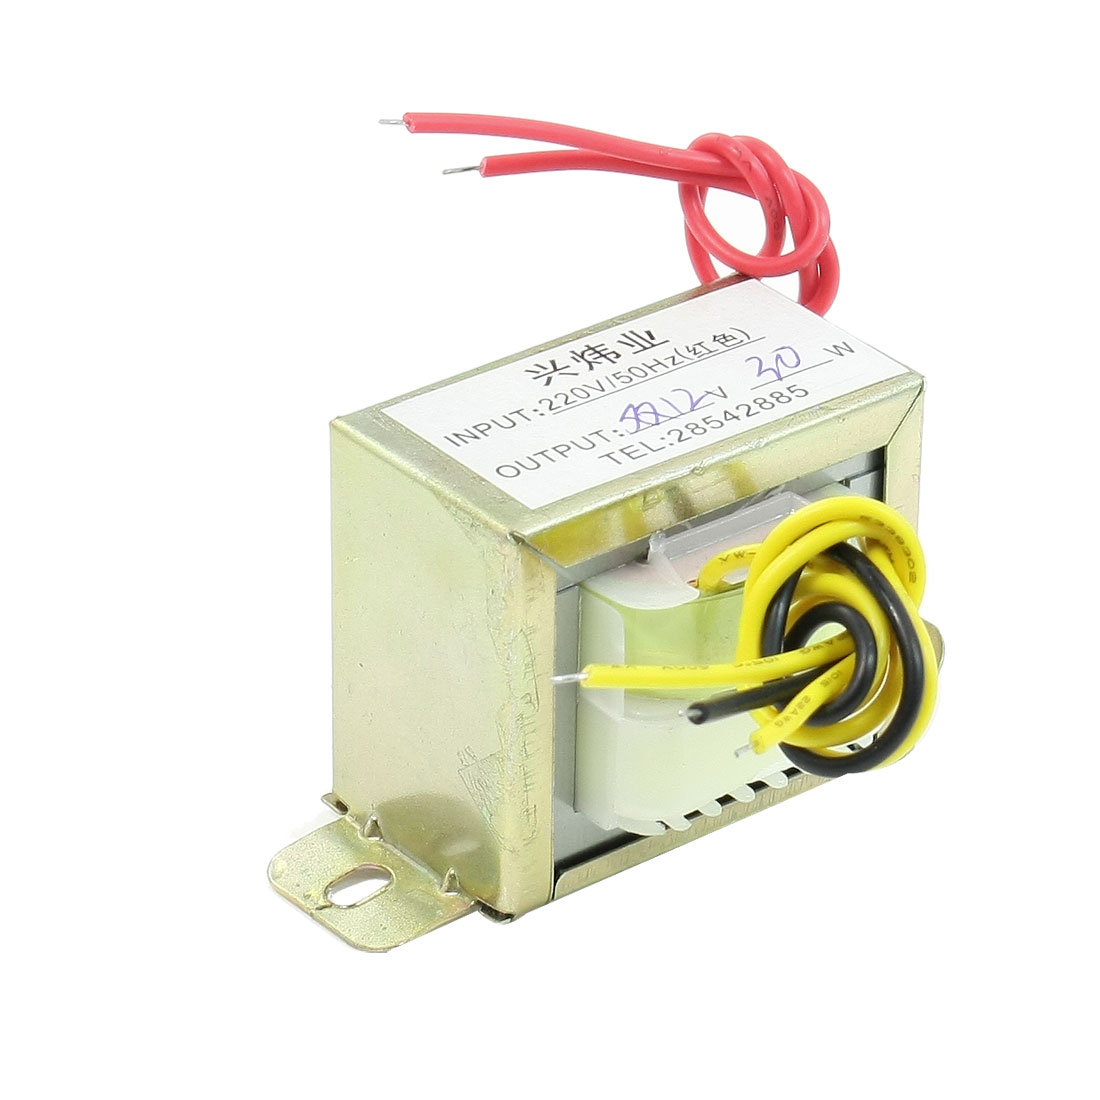 220V 50Hz Input to 12V 30W Output EI Core Double Phase Power Transformer